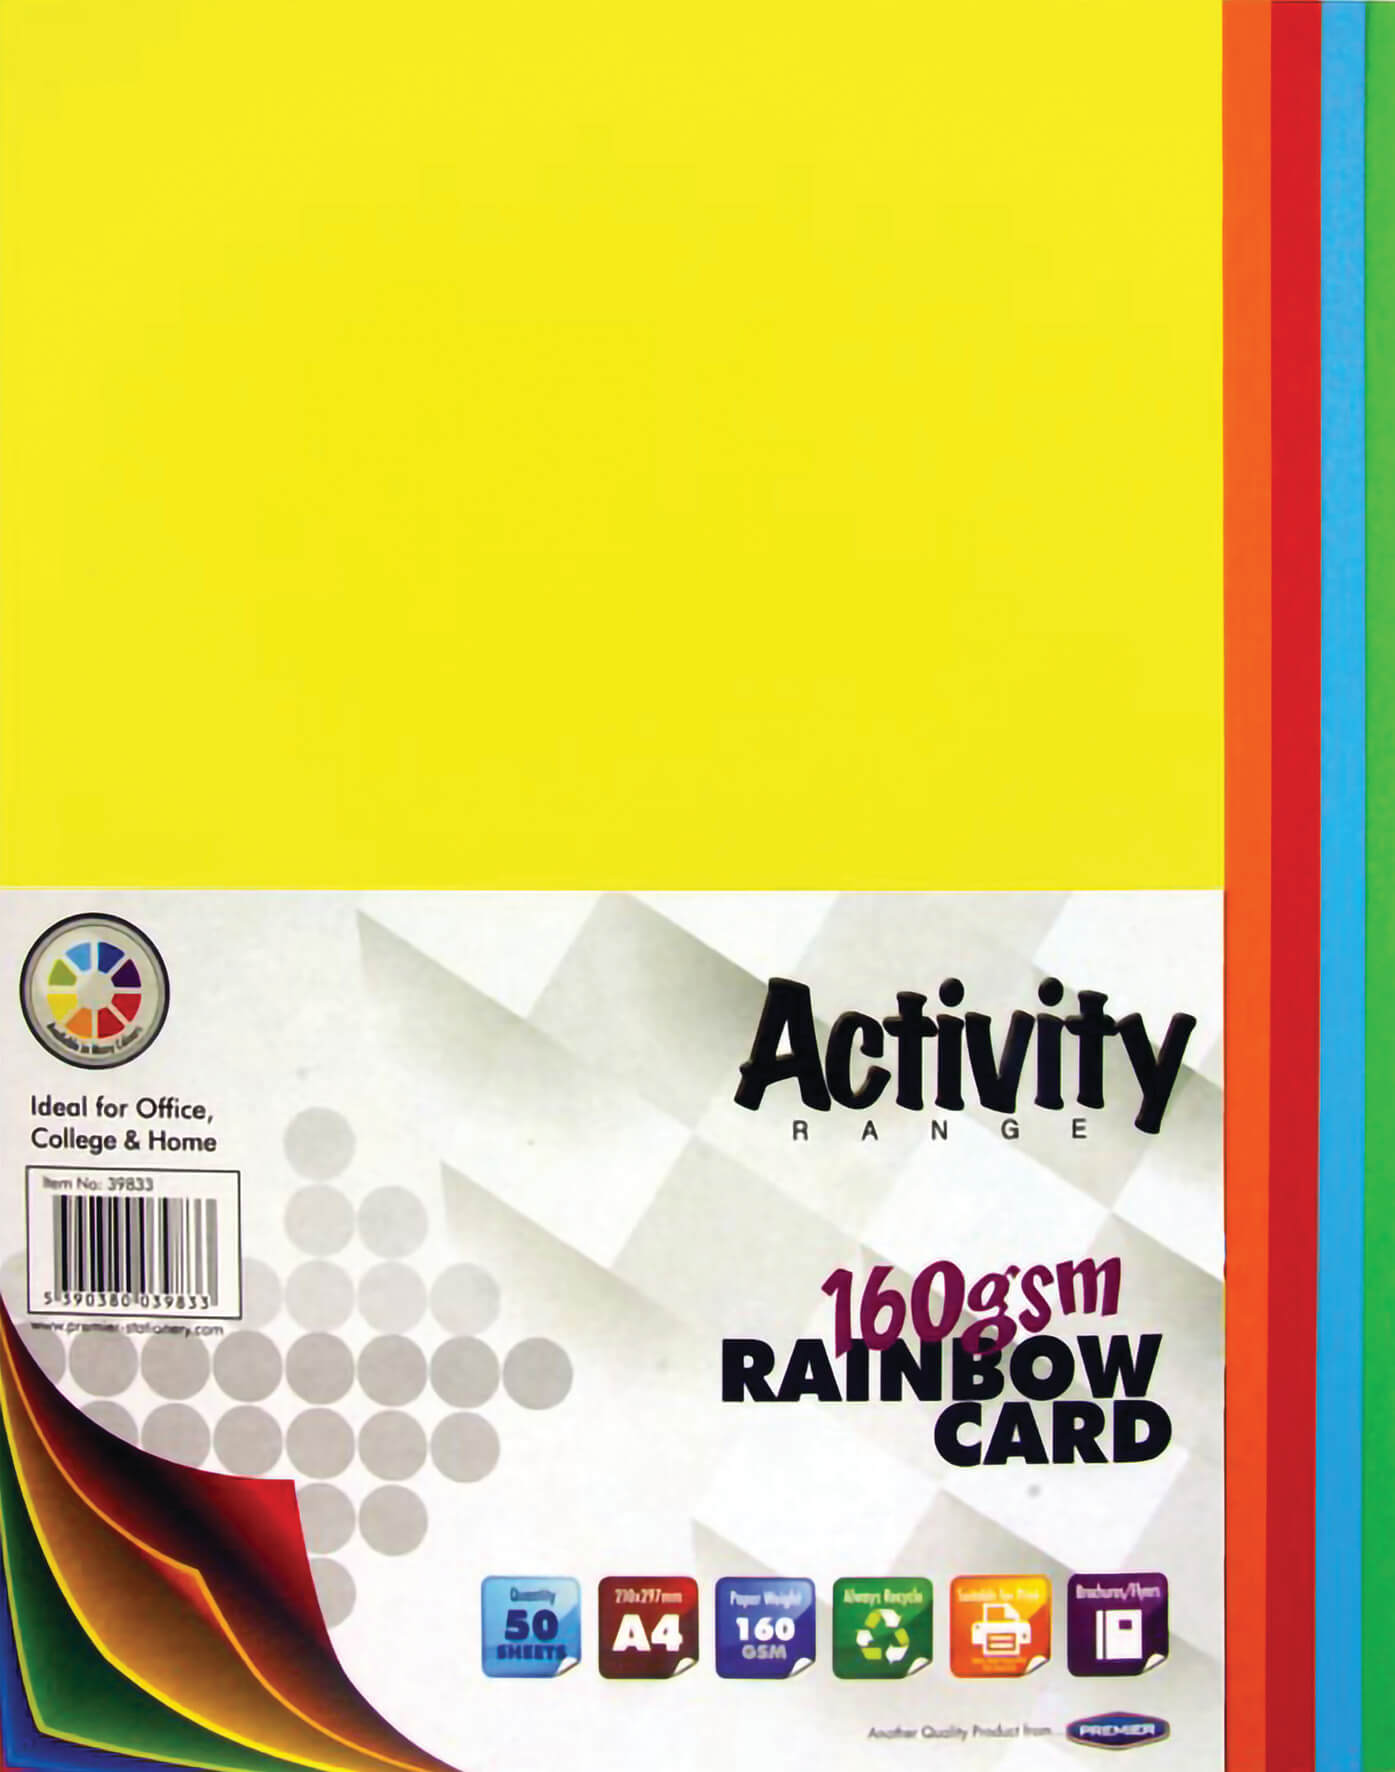 Card Rainbow A4 160gsm - 50 Sheets